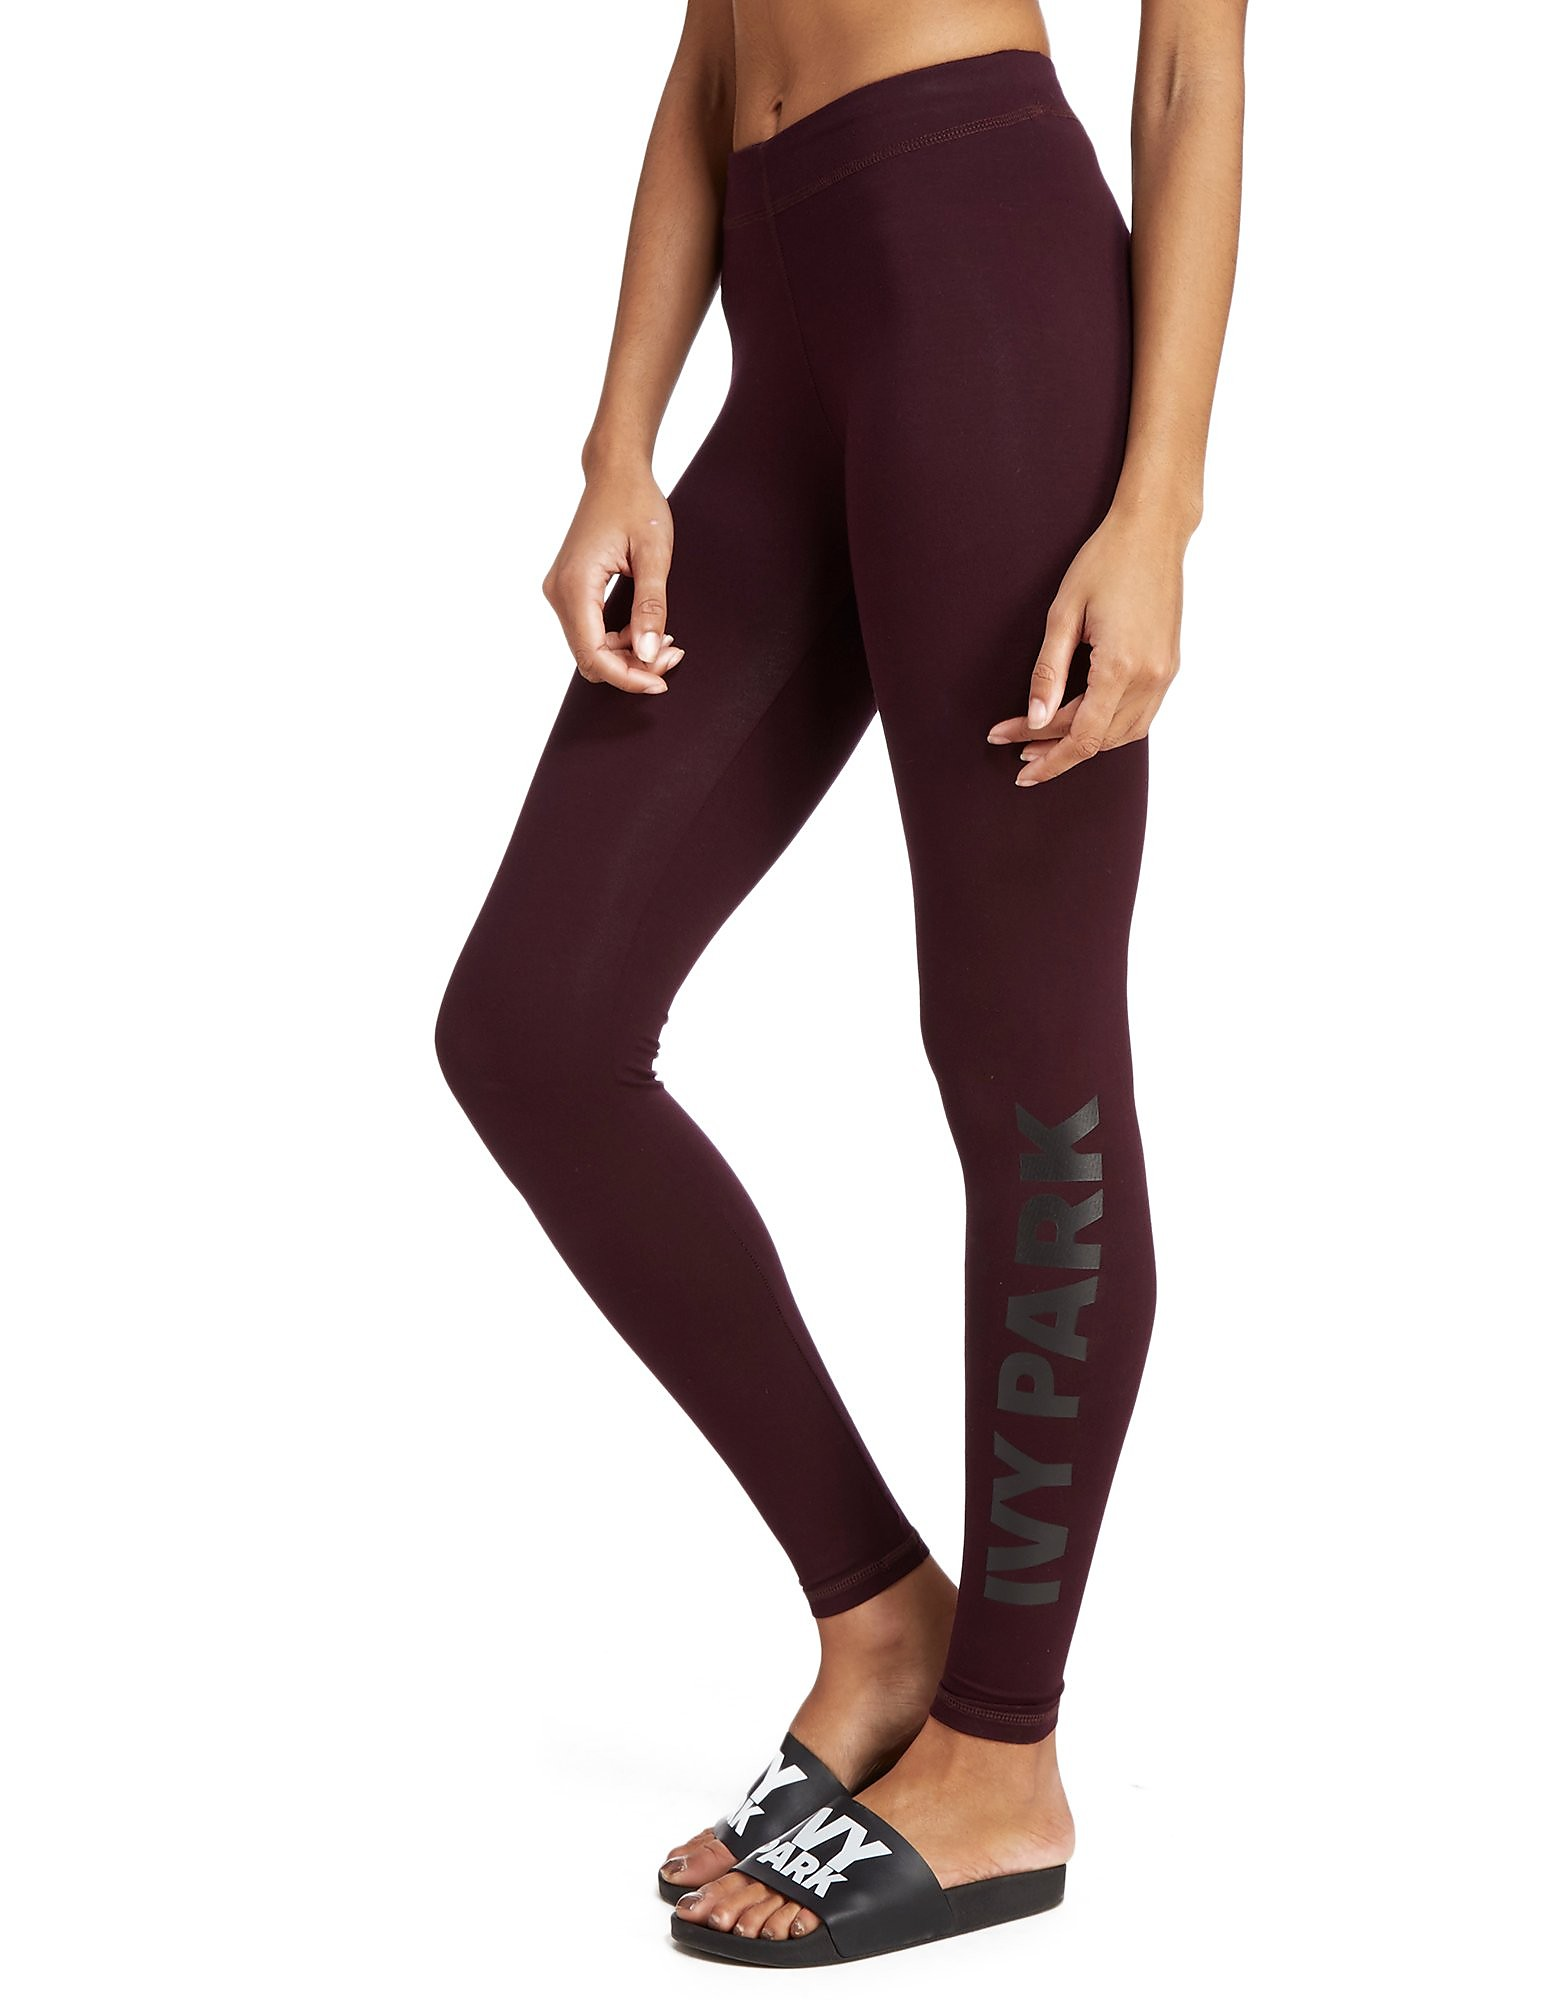 IVY PARK Logo Ankle Leggings